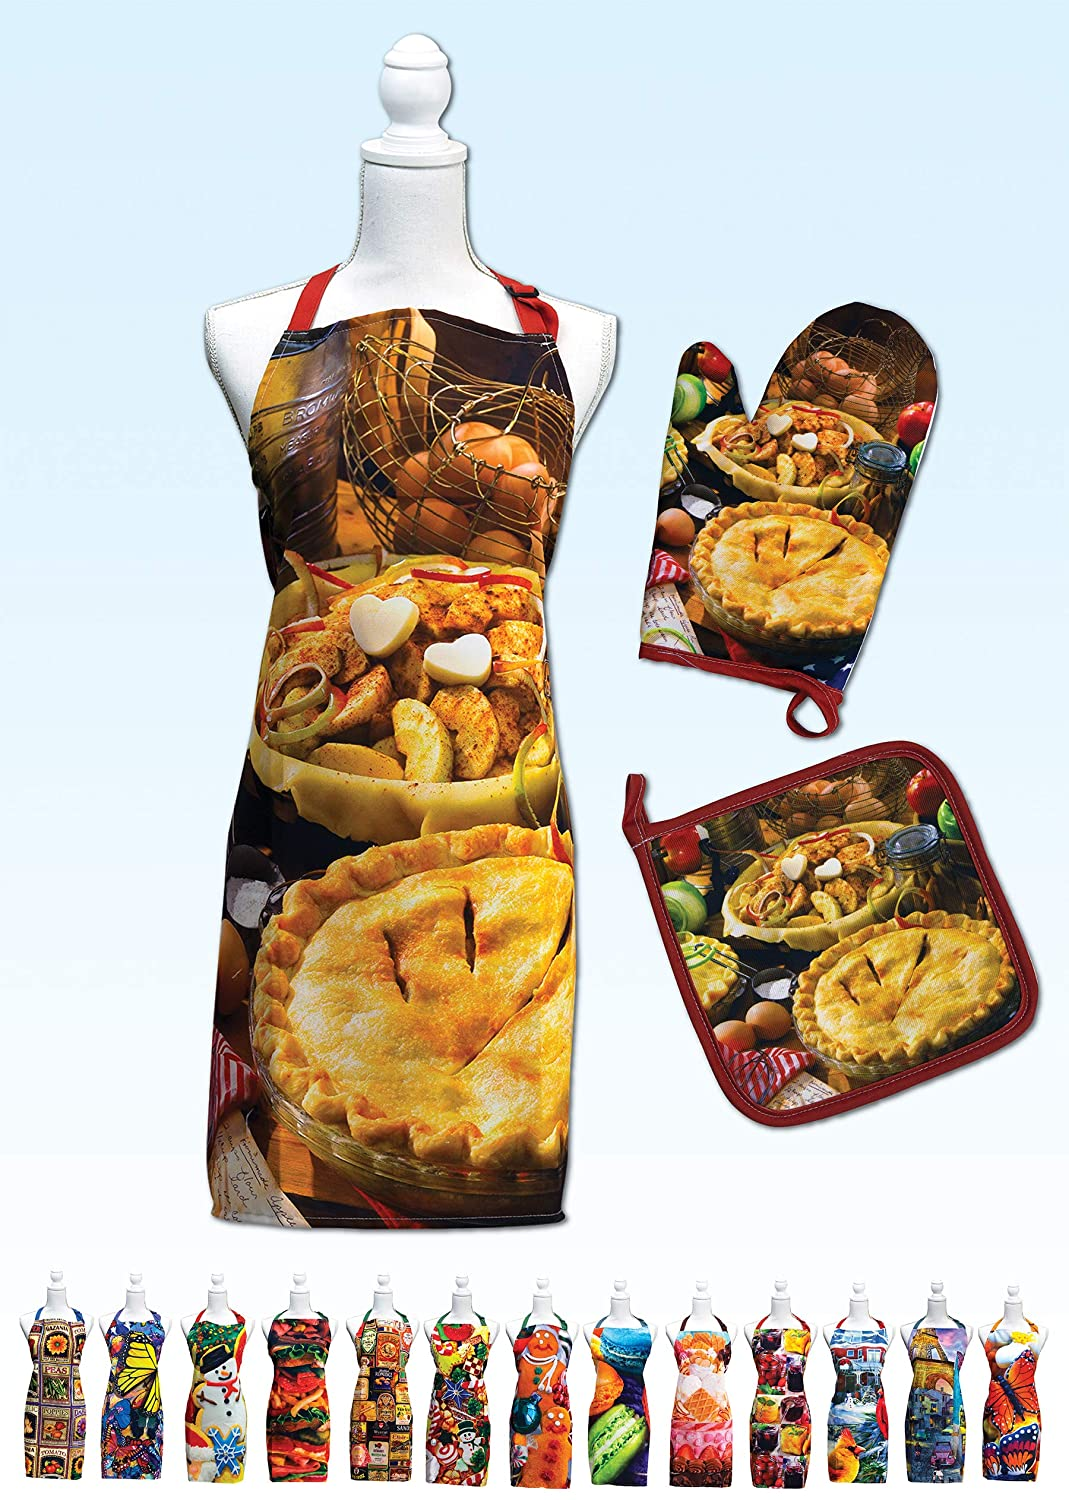 Springbok Apple Pie Adjustable Kitchen Apron, Oven Mitt and Pot Holder Set